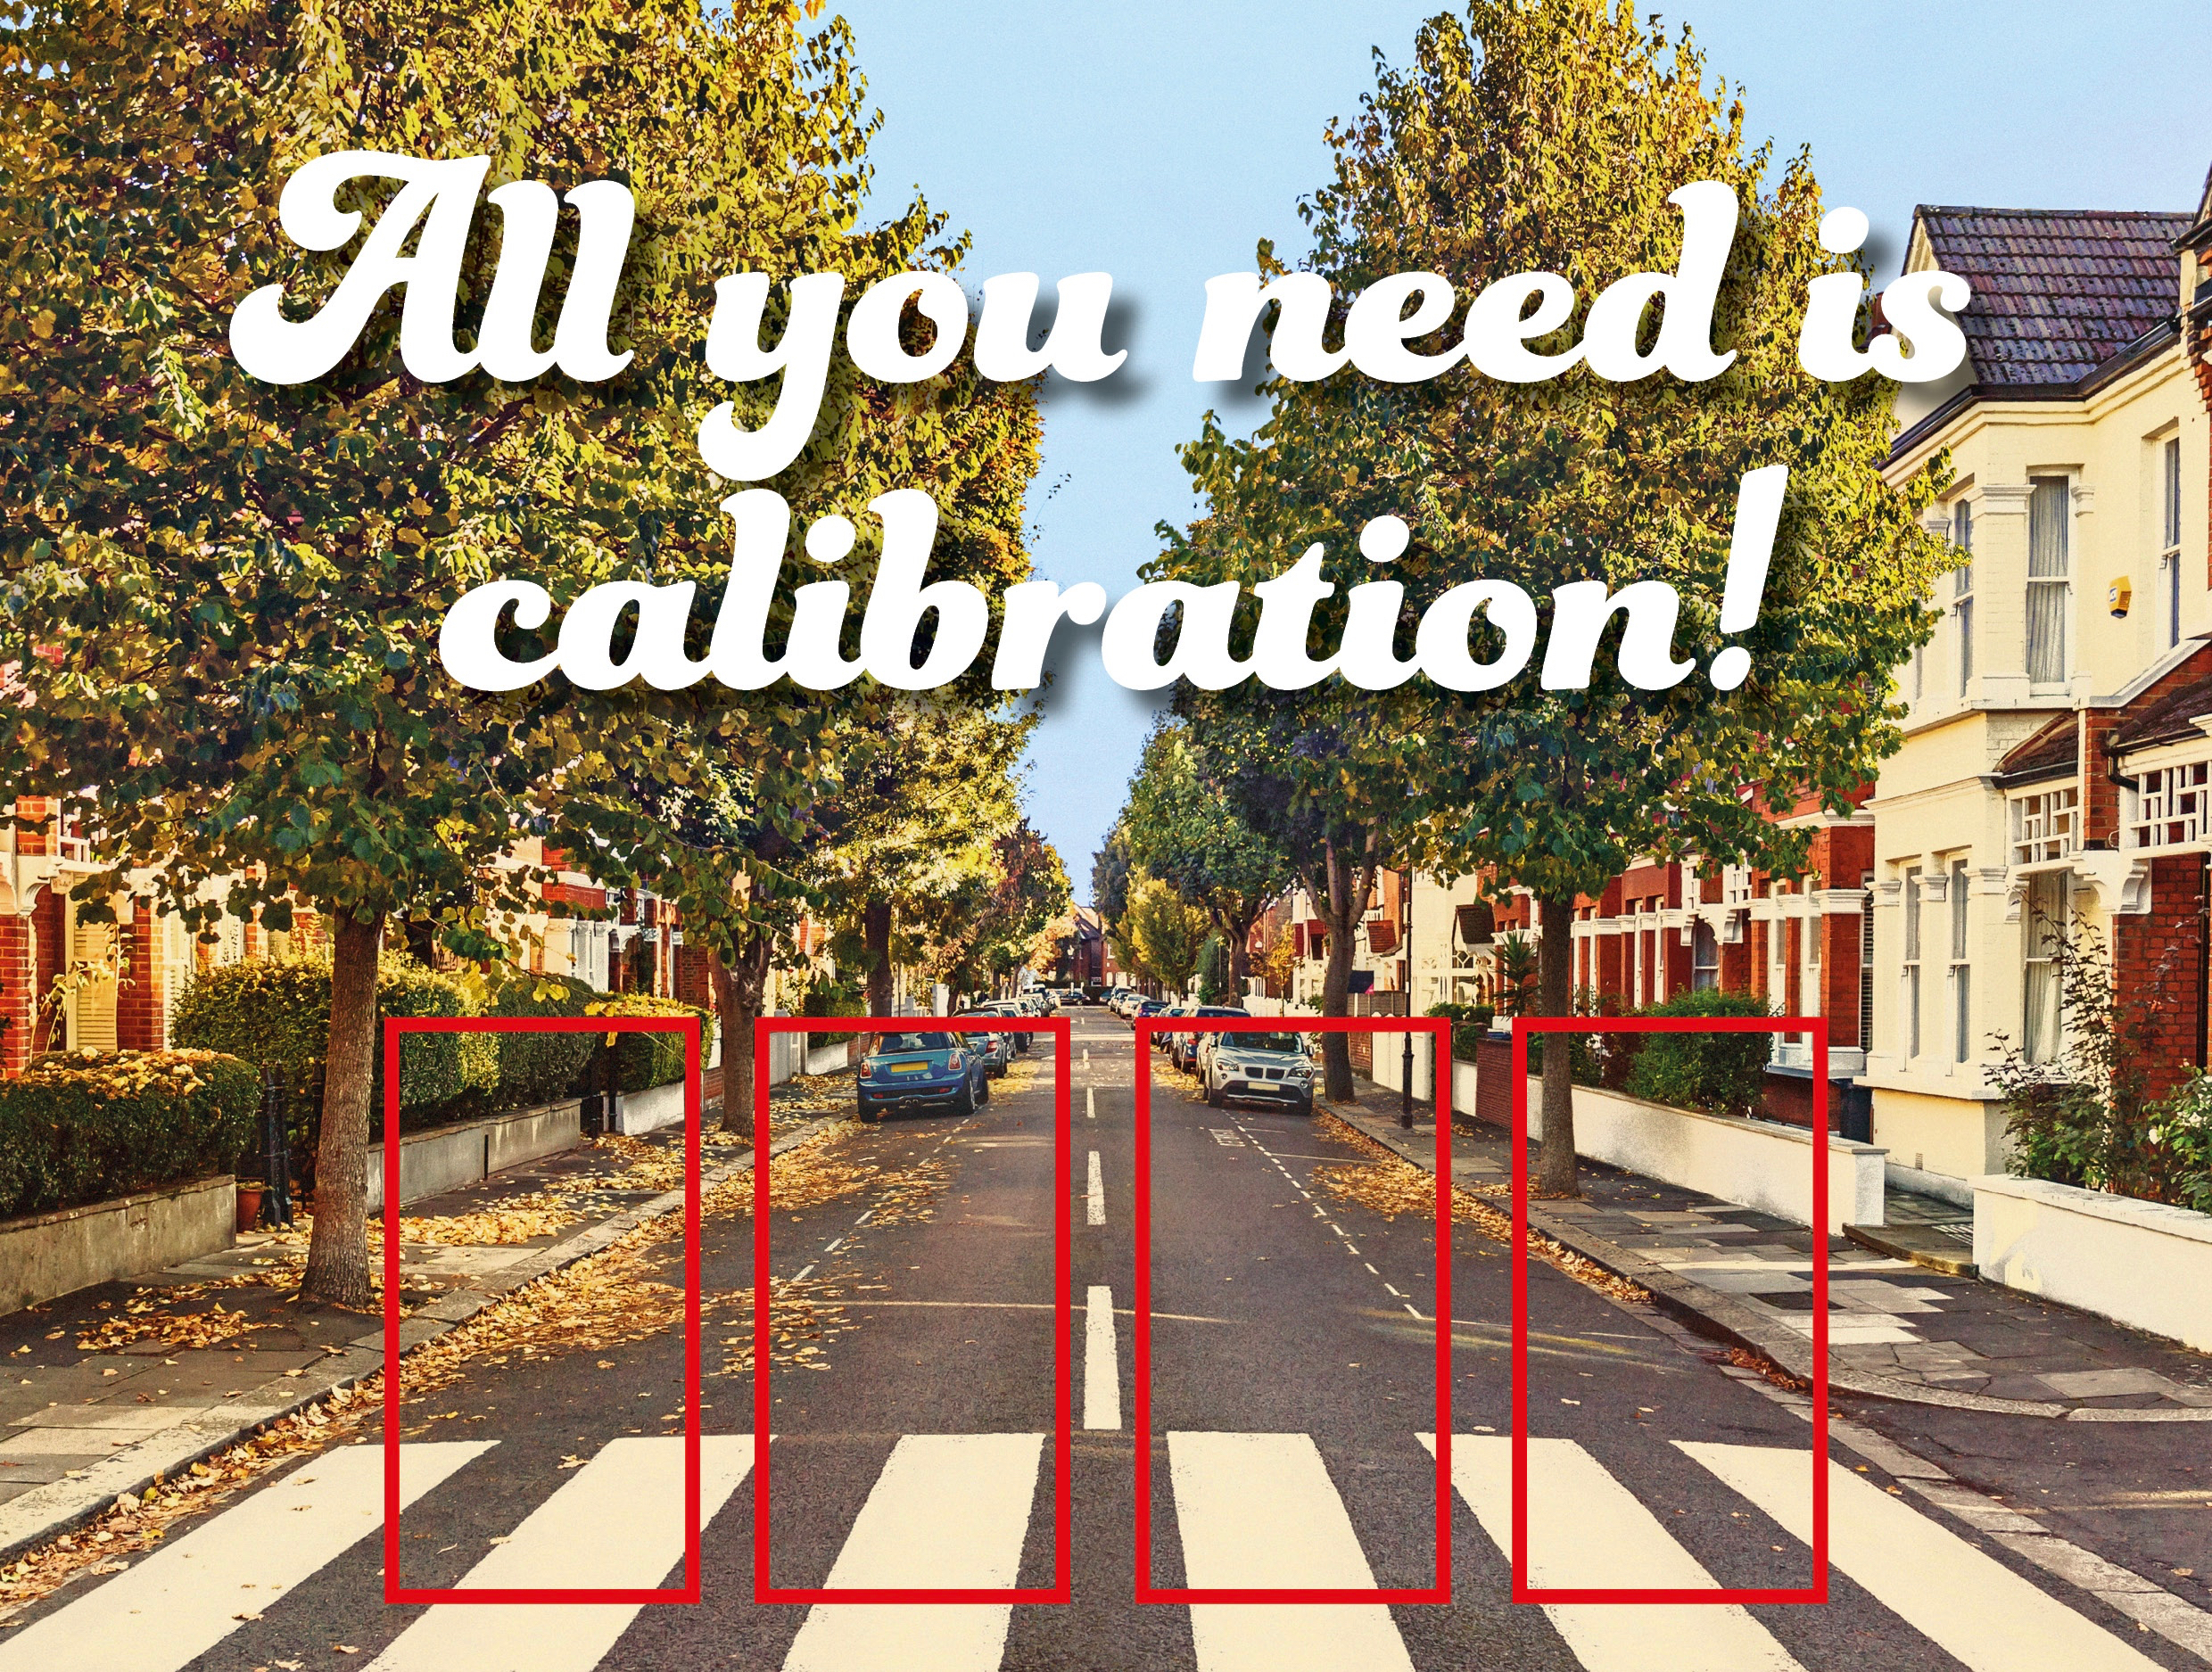 All you need is calibration by TEXA